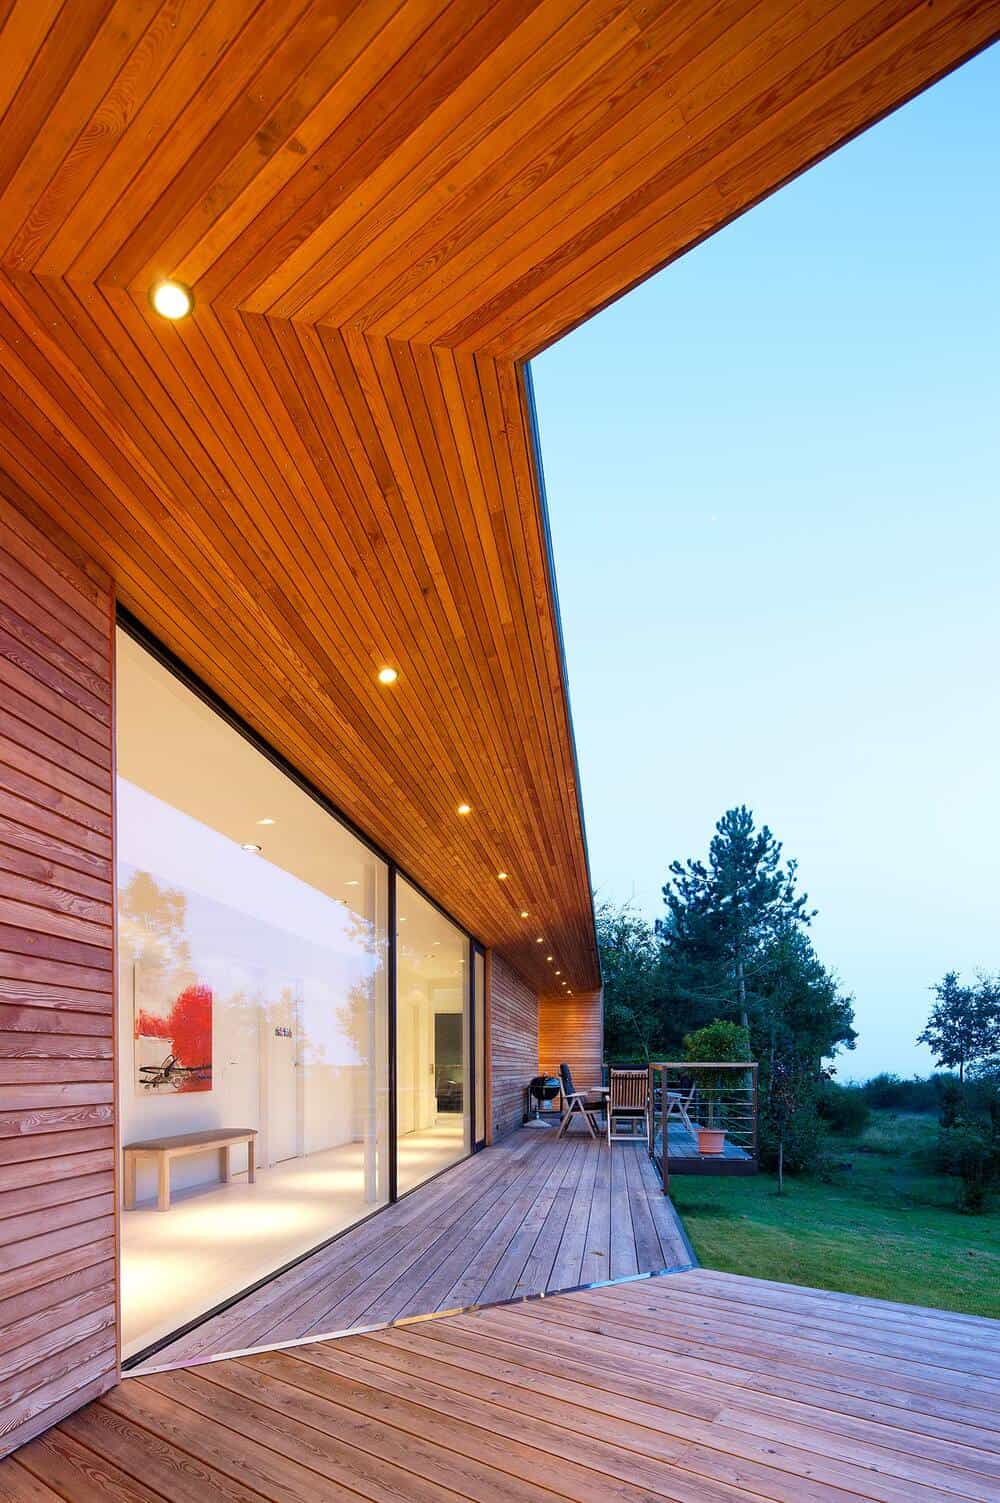 The wooden ceiling above the wooden deck walkway has recessed lights.